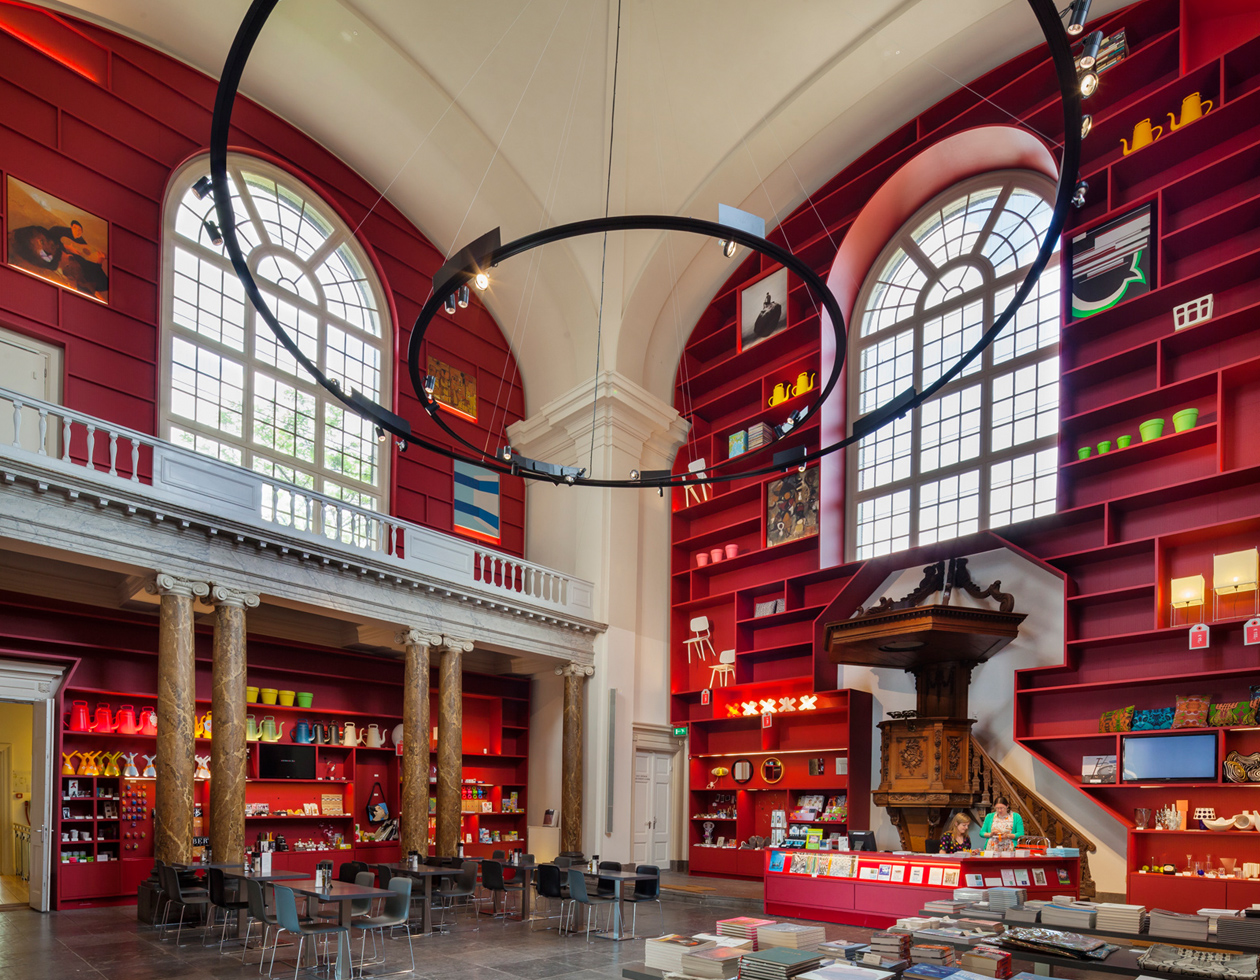 Transformation Stedelijk Museum Schiedam: MVRDV wraps interior of historical chapel in red shelves